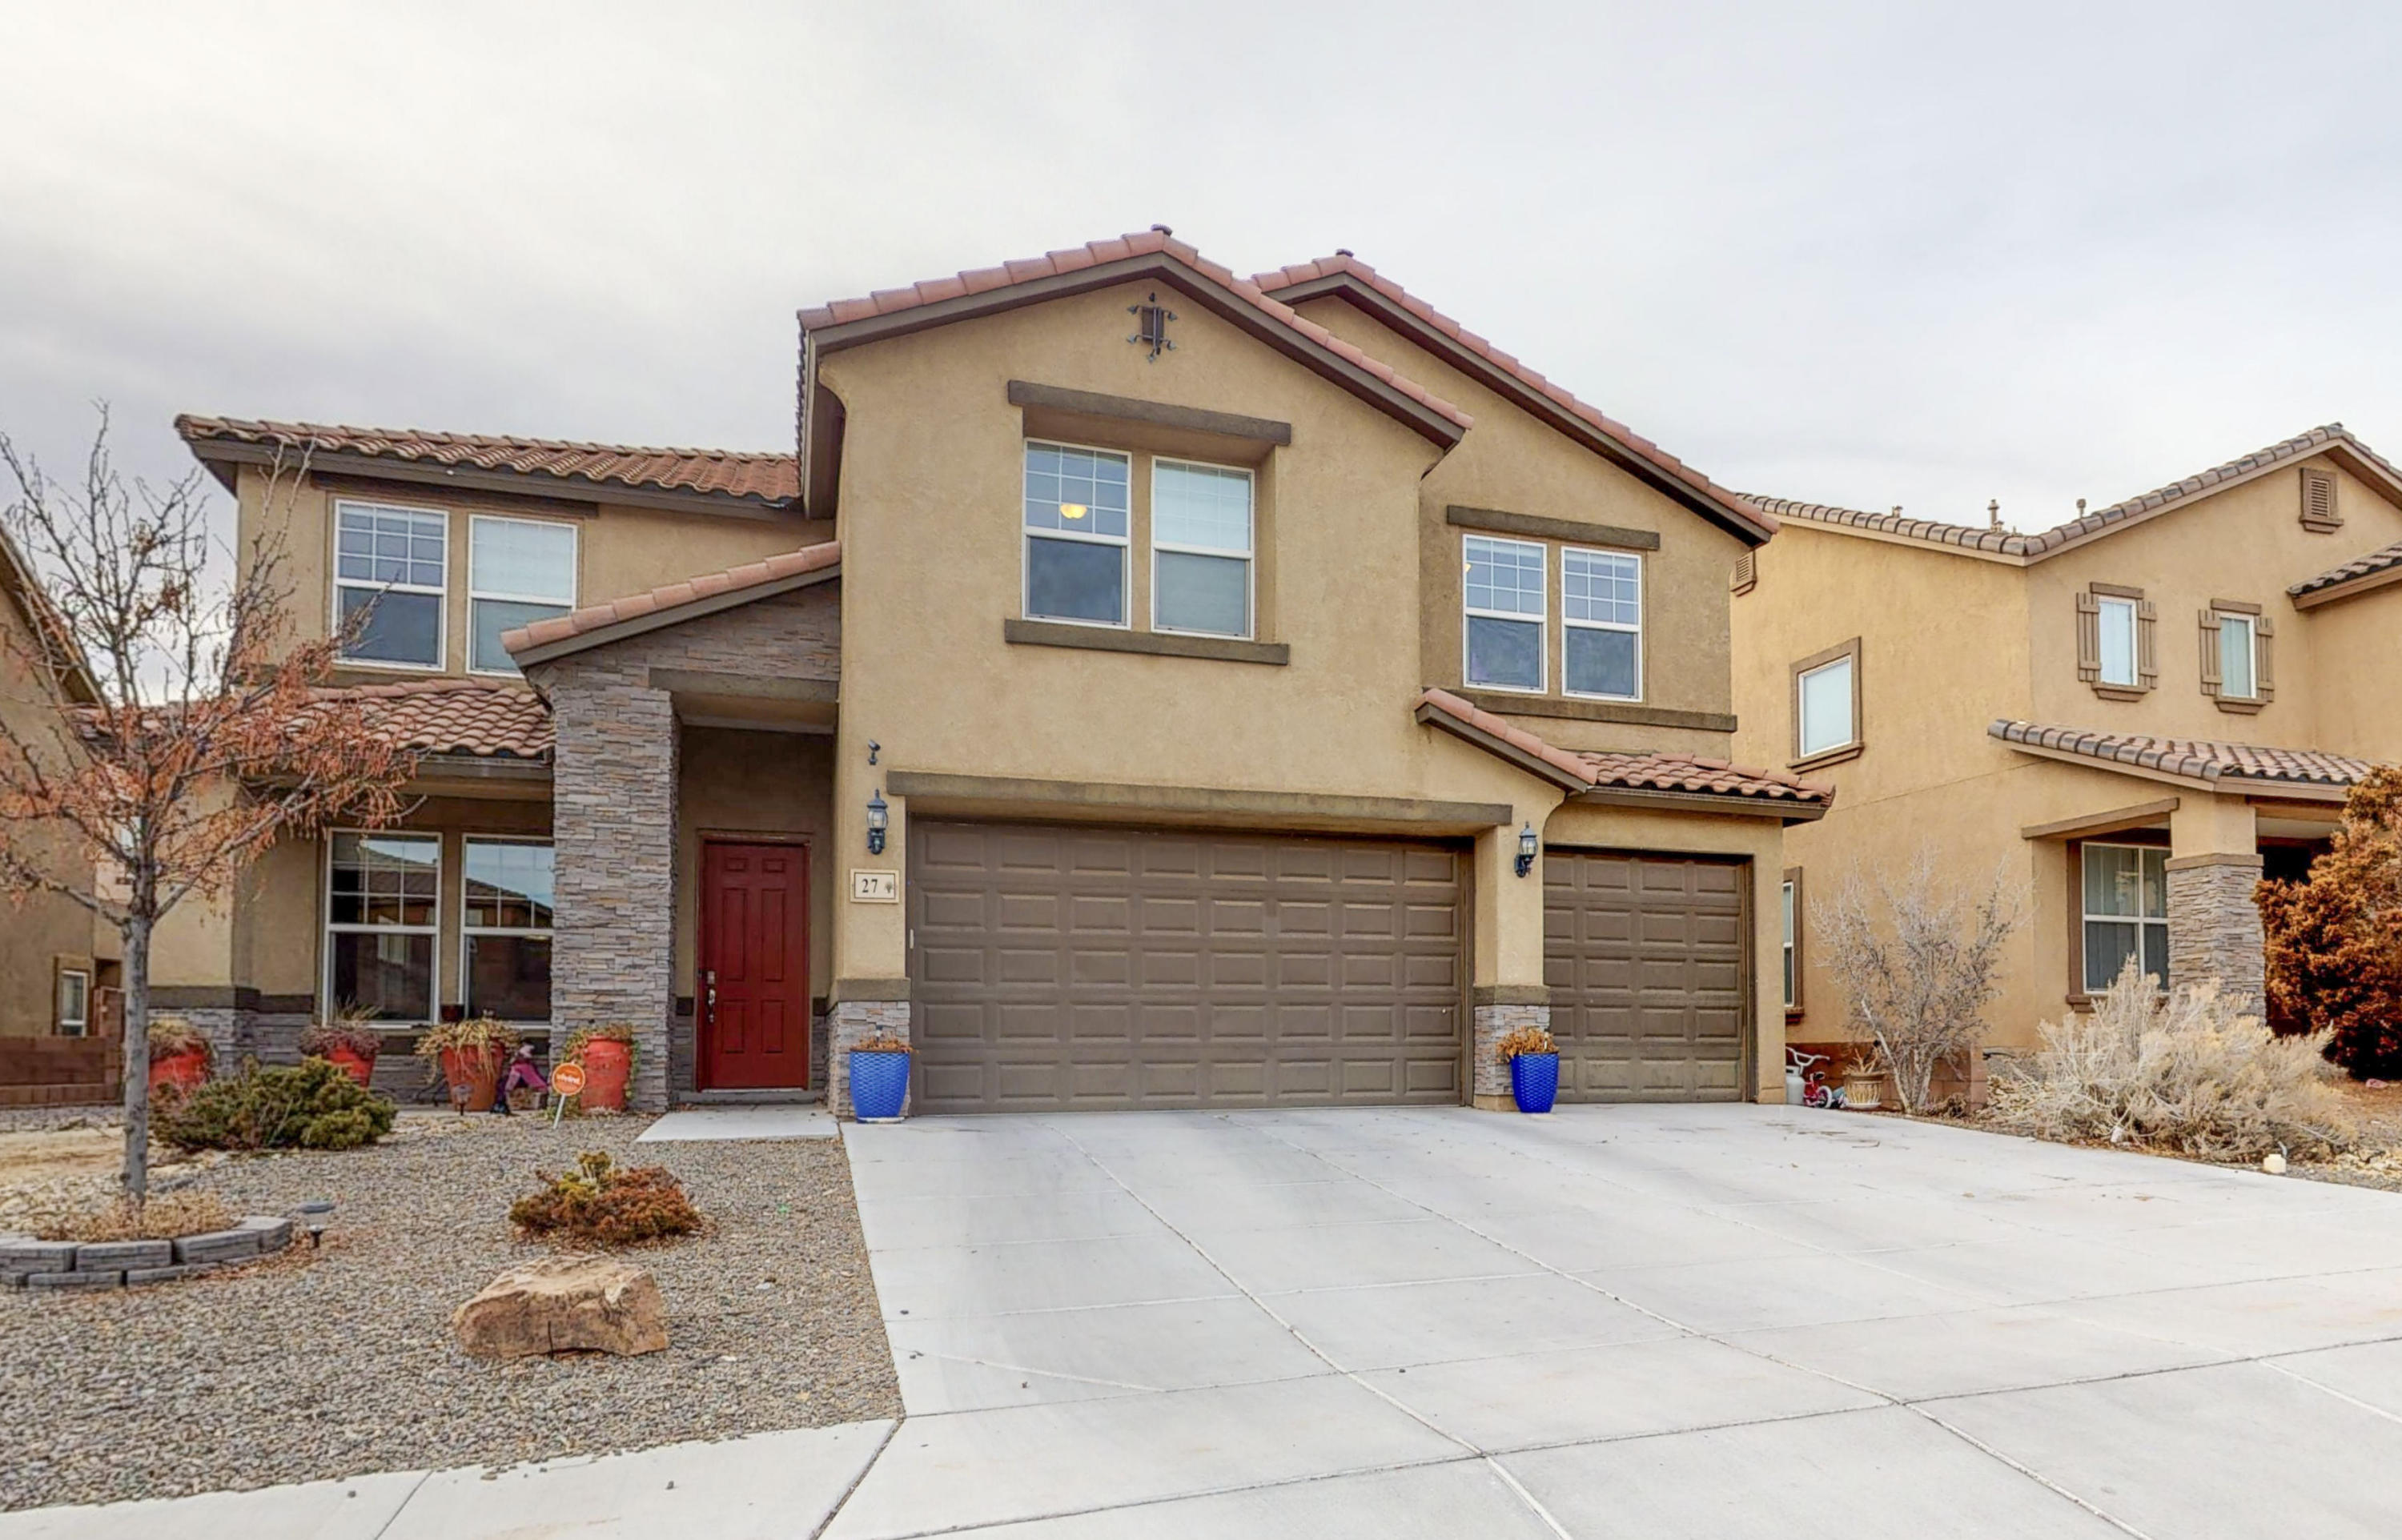 27 MONTE VISTA Drive NE Property Photo - Rio Rancho, NM real estate listing